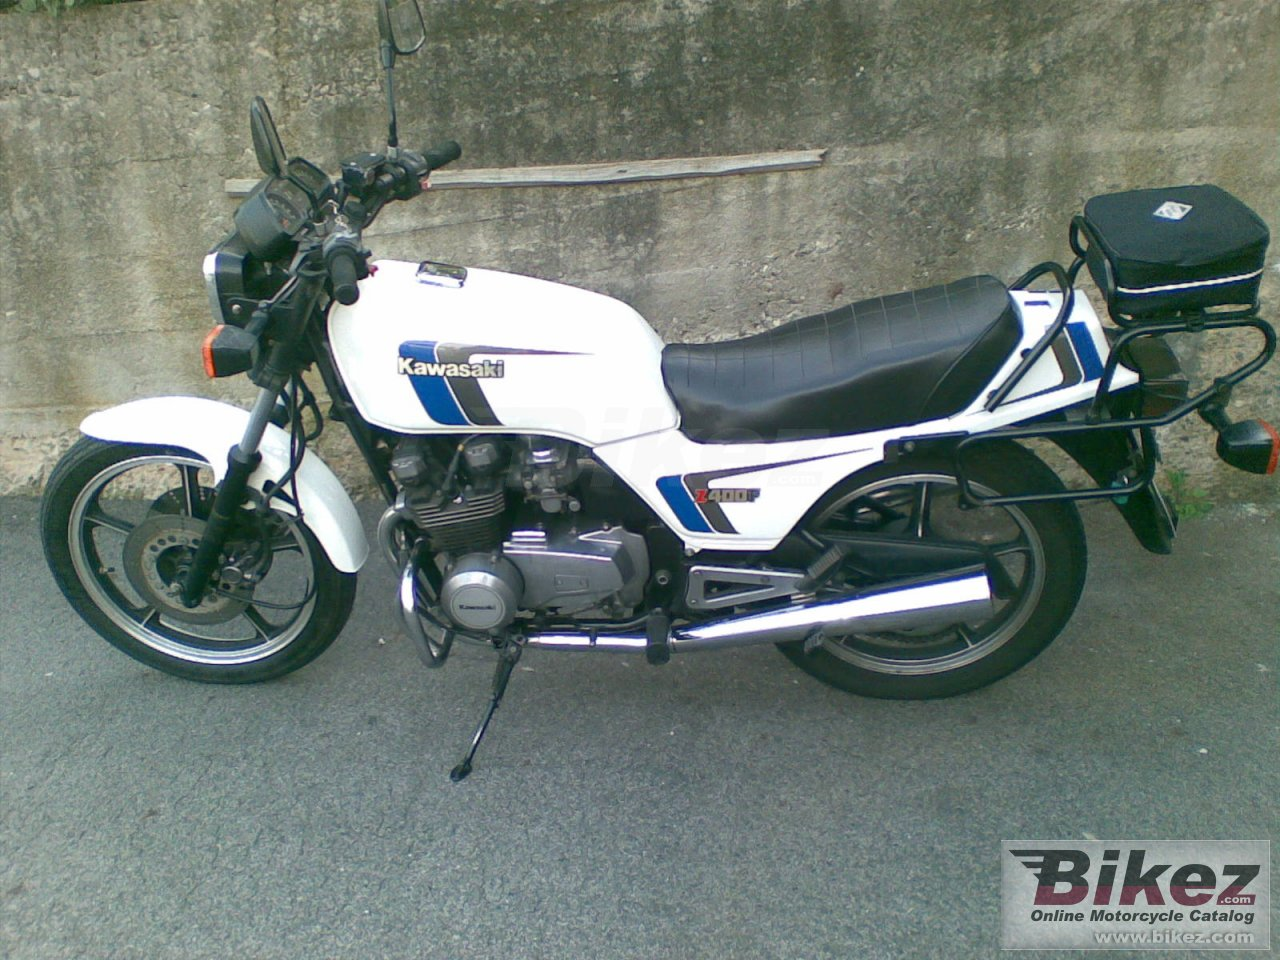 Big  z 400 f (reduced effect) picture and wallpaper from Bikez.com